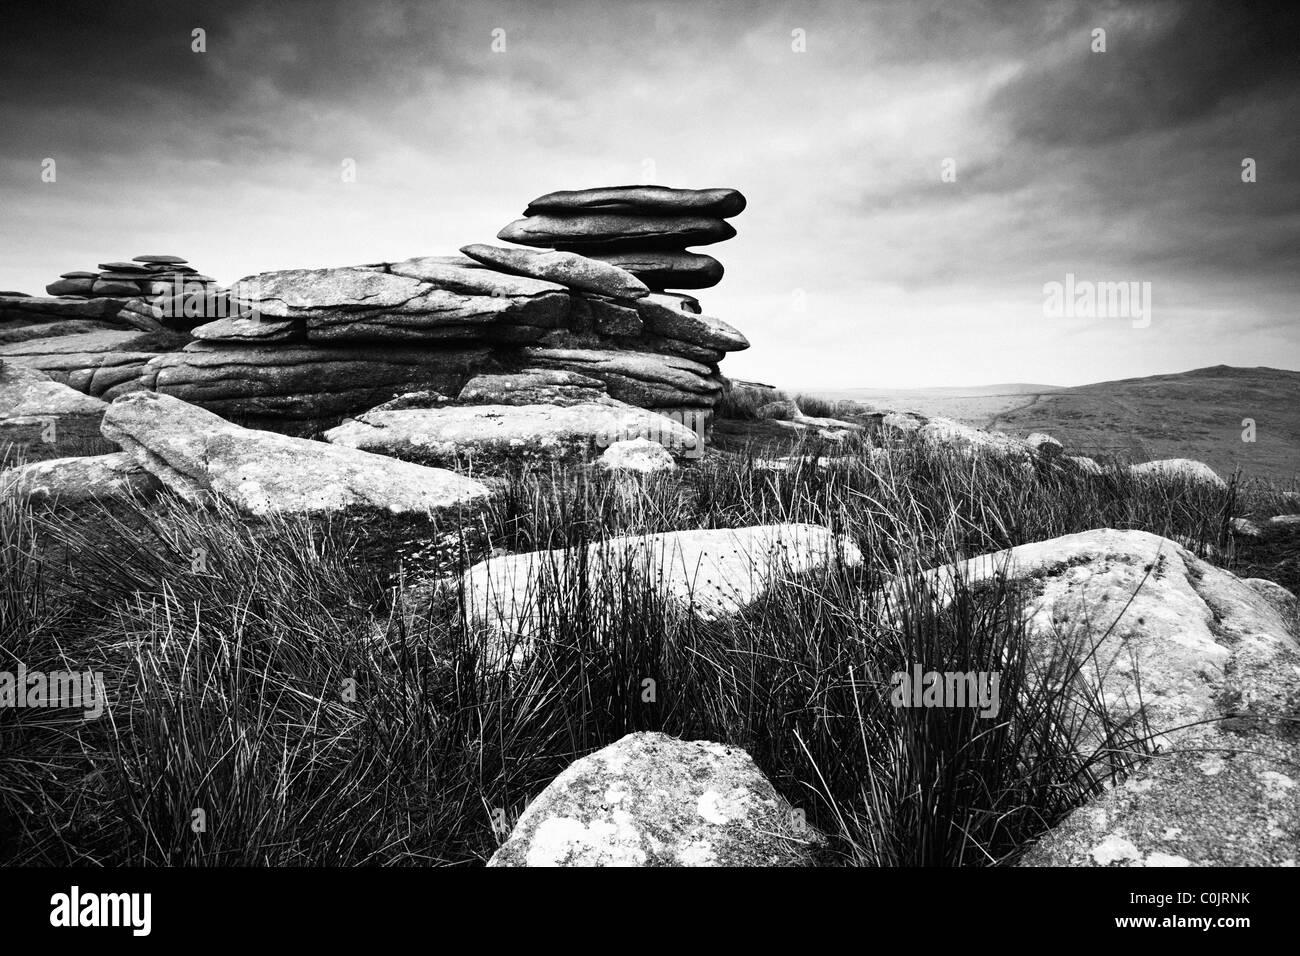 Rough Tor. Bodmin Moor. Cornwall. England. UK. - Stock Image